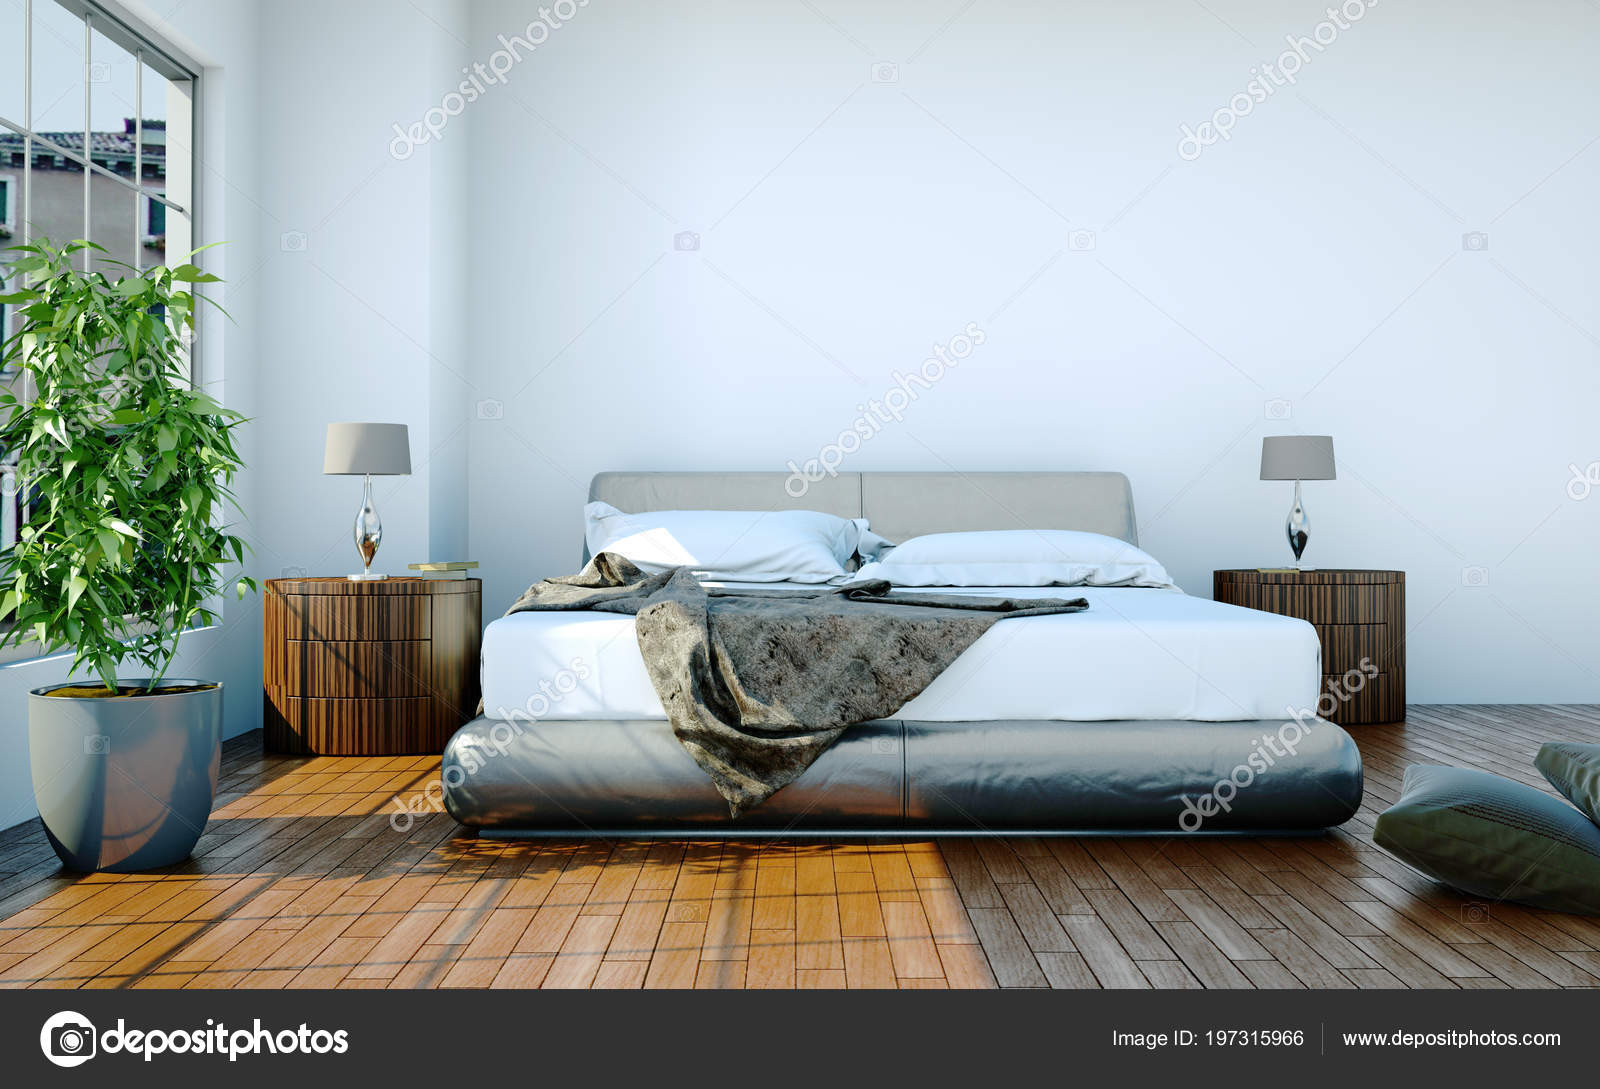 Modern Bedroom With King Size Bed And Modern Decor Stock Photo Image By C Virtua73 197315966